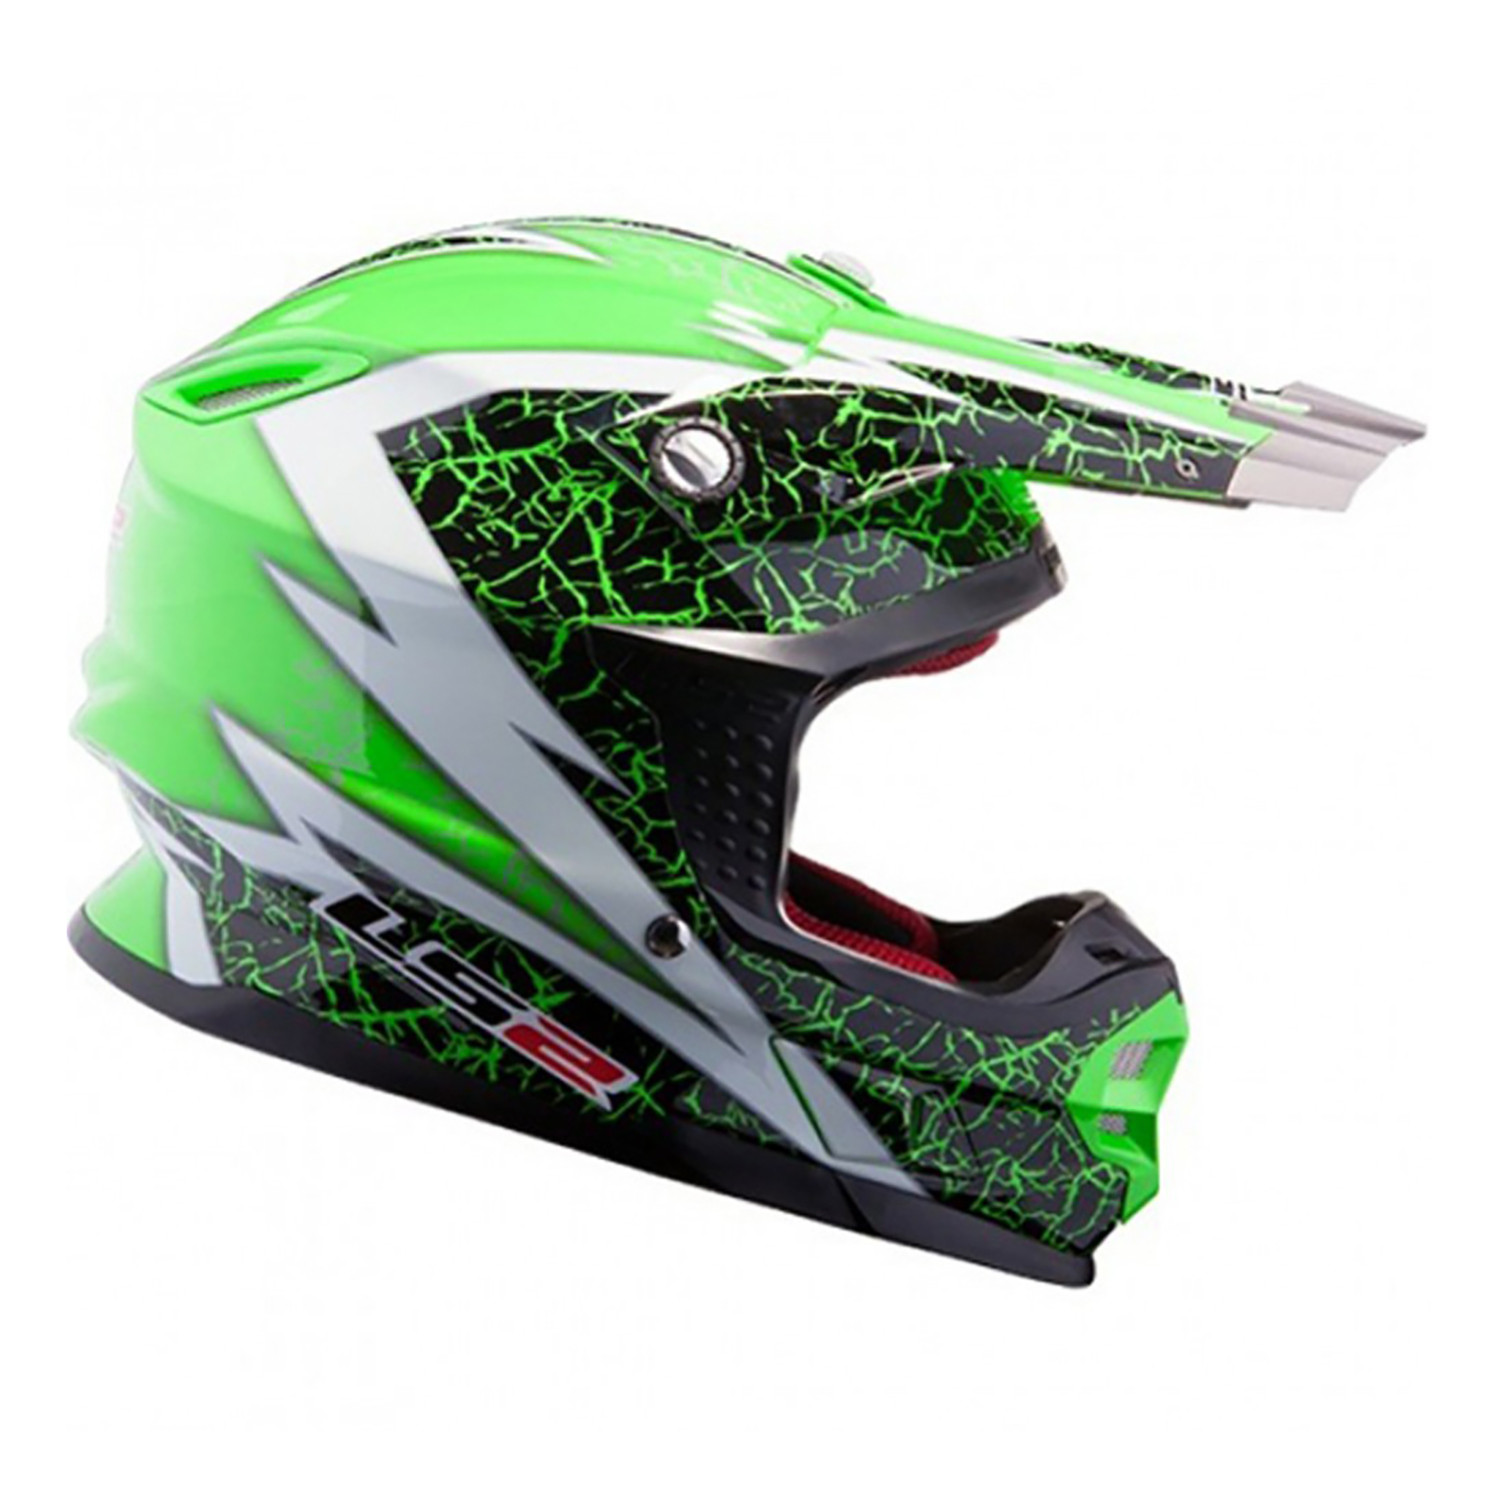 Casco Cross LS2 MX 456 Craze Verde